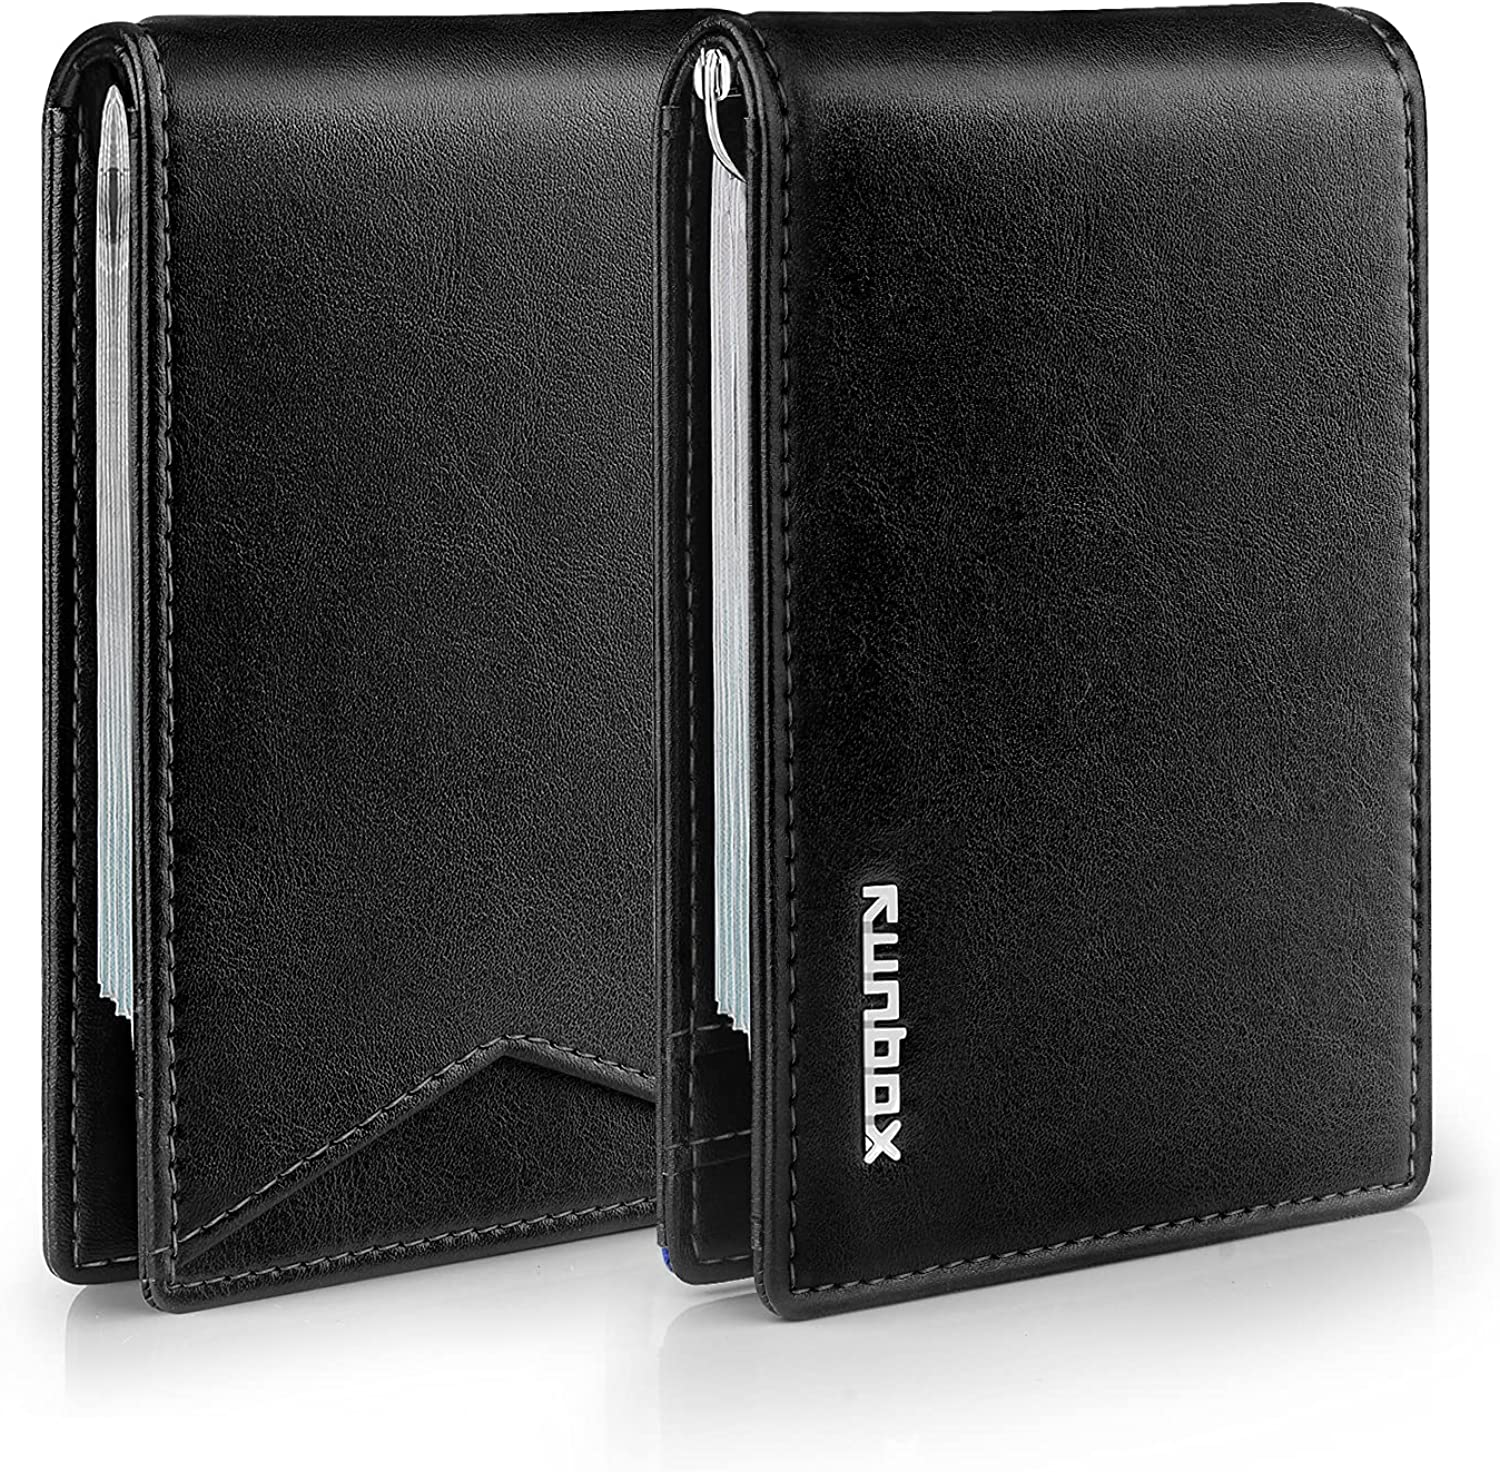 RUNBOX Slim Wallets for Men RFID BLOCKING Leather Stylish Bifold Mens Minimalist Wallet with Clip